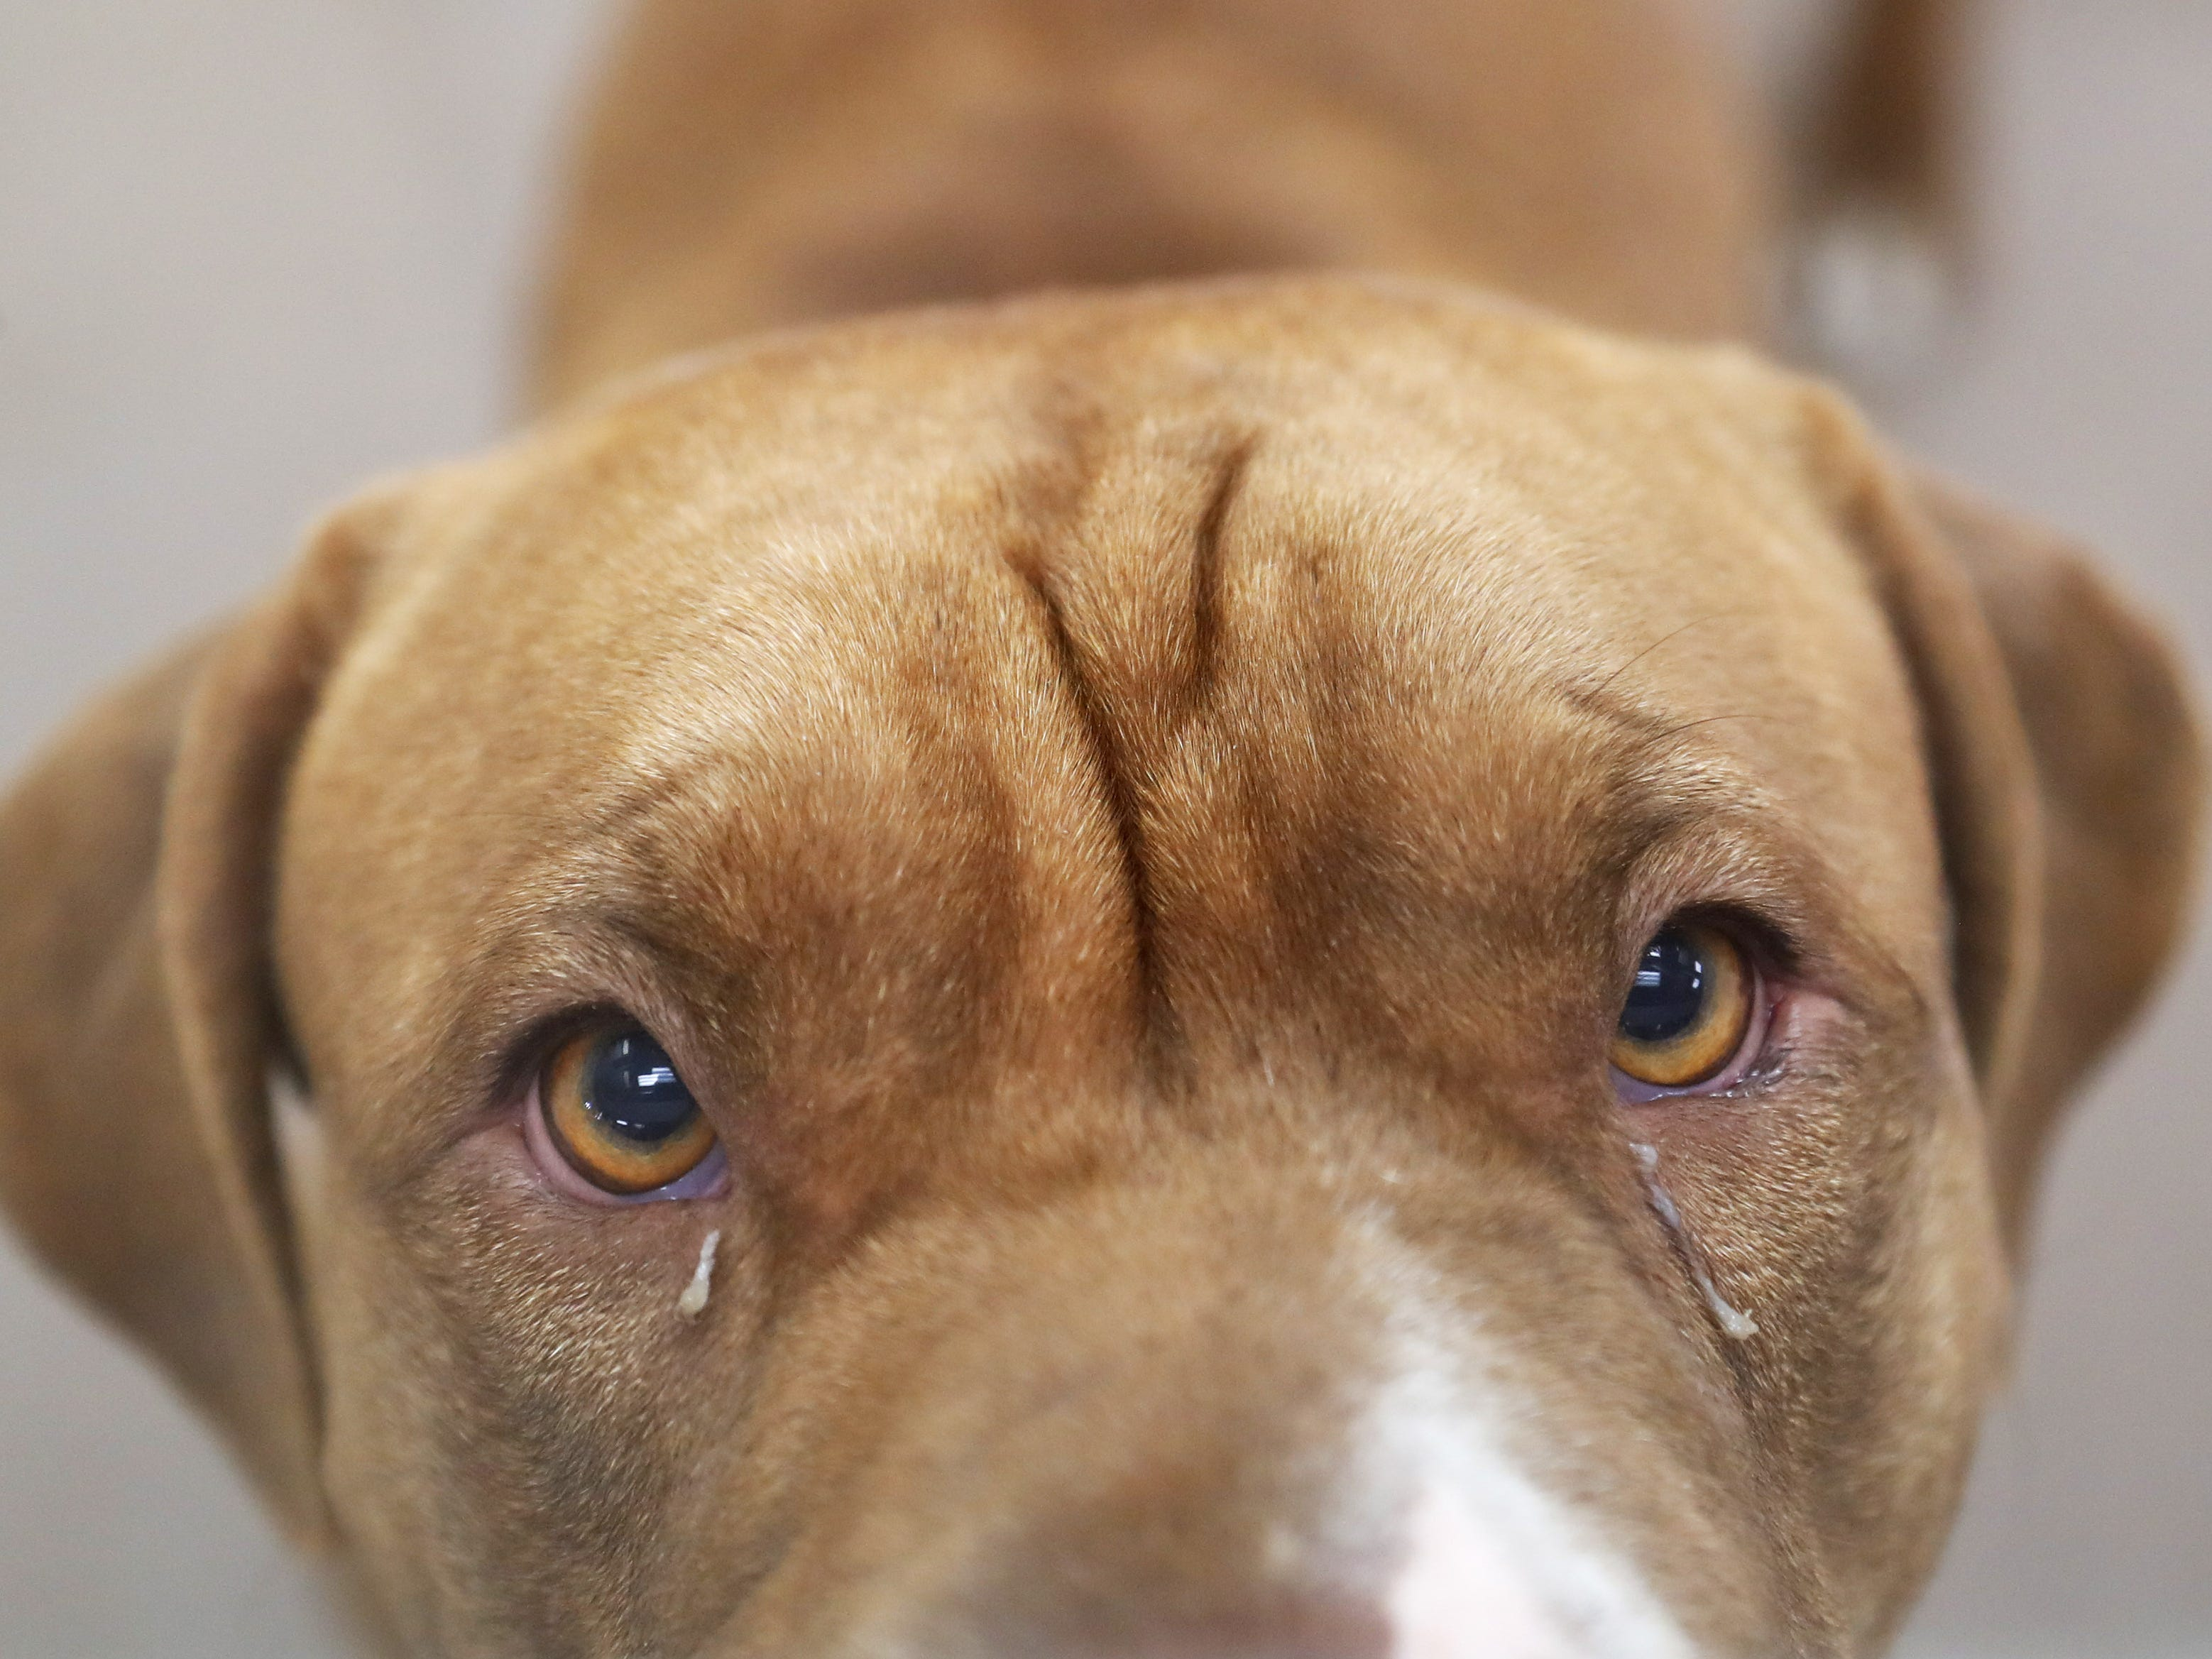 Carly, a Chinese Shar-Pei and American pit bull mix, waits to be adopted at the Arizona Humane Society in Phoenix on April 1, 2019. More than 8,000 dogs and cats have been surrendered in Maricopa County since the start of the year.